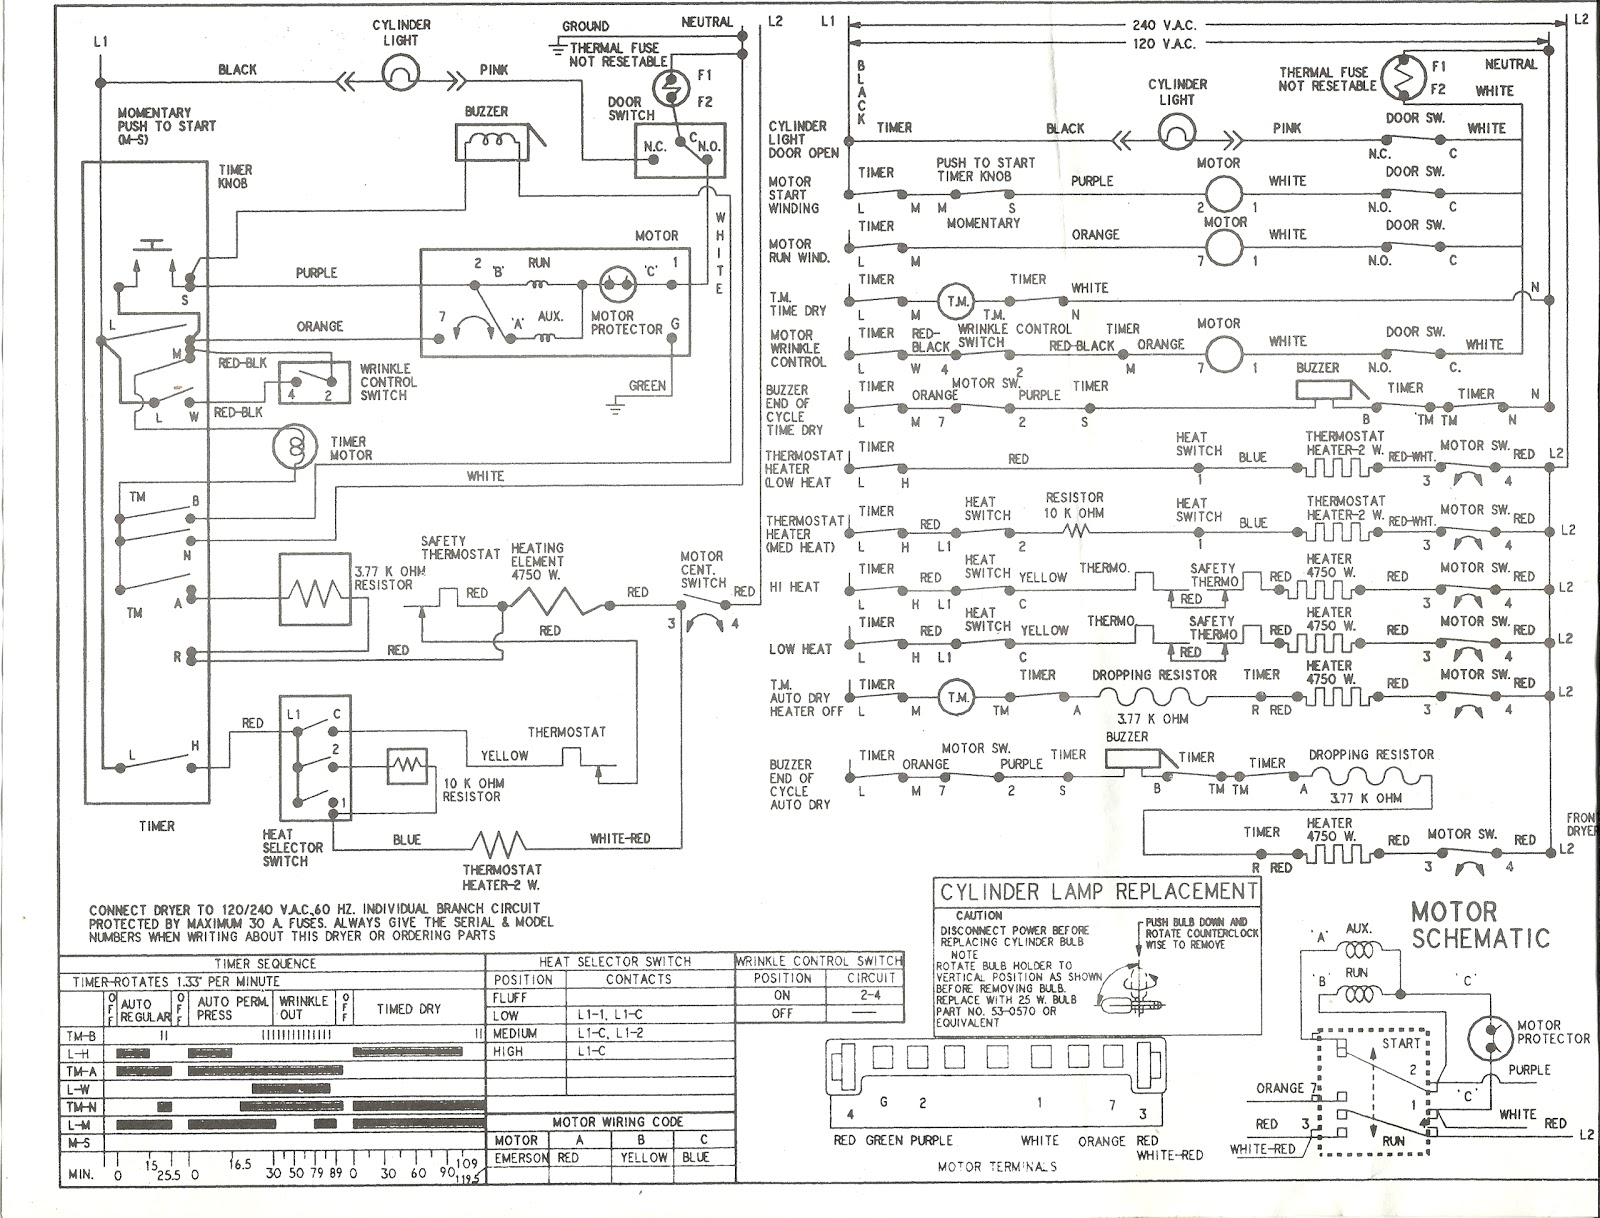 wiring diagram of whirlpool washing machine schematics wiring white westinghouse washing machine schematics whirlpool washer control board wiring diagram enthusiast wiring rh rasalibre co circuit diagram of whirlpool washing